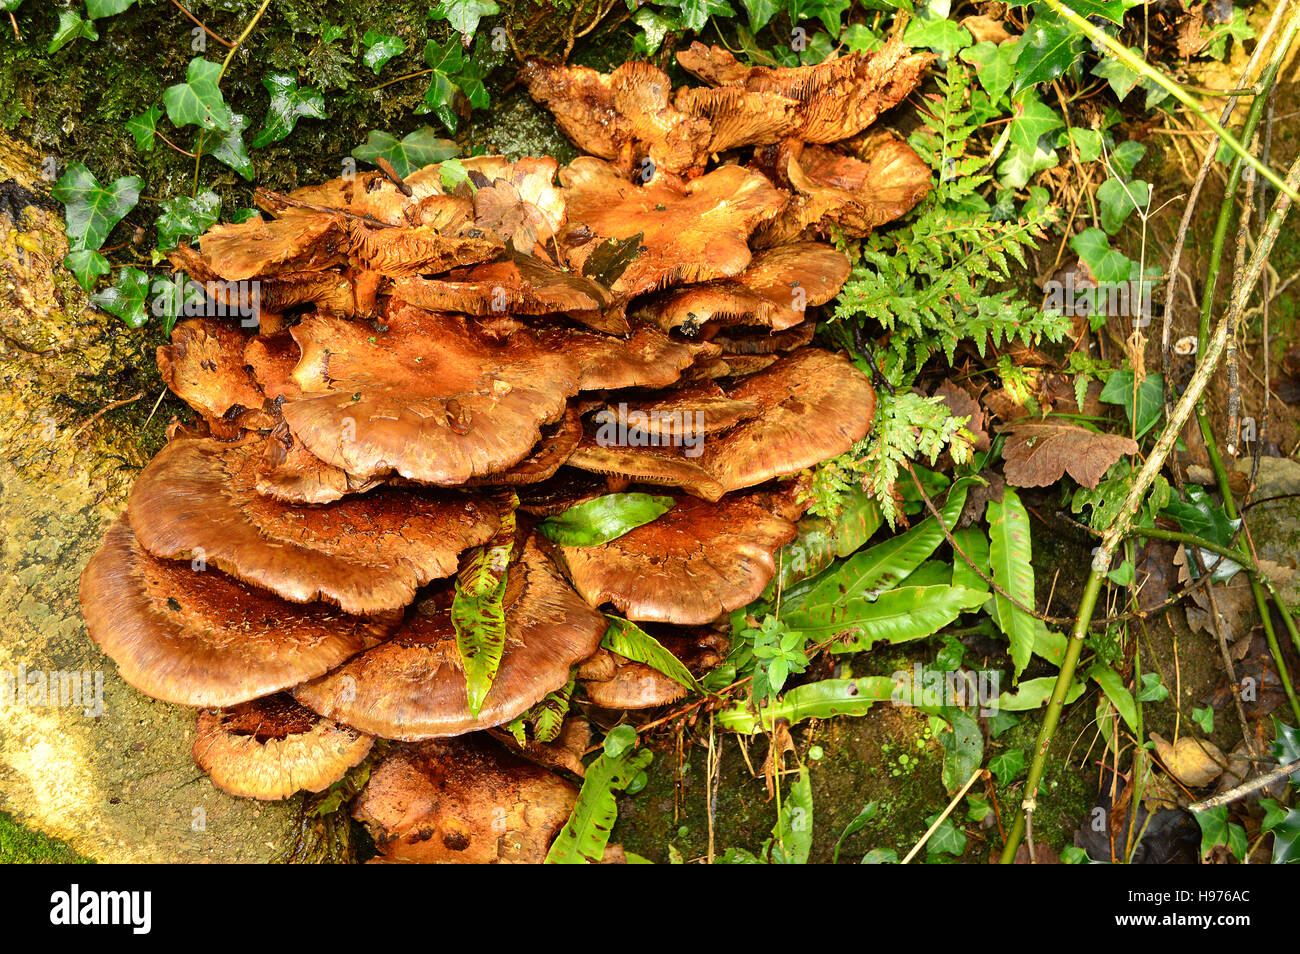 Group of Toadstools, Fungi, at base of tree - like Mushrooms, but could be poisonous! - Stock Image